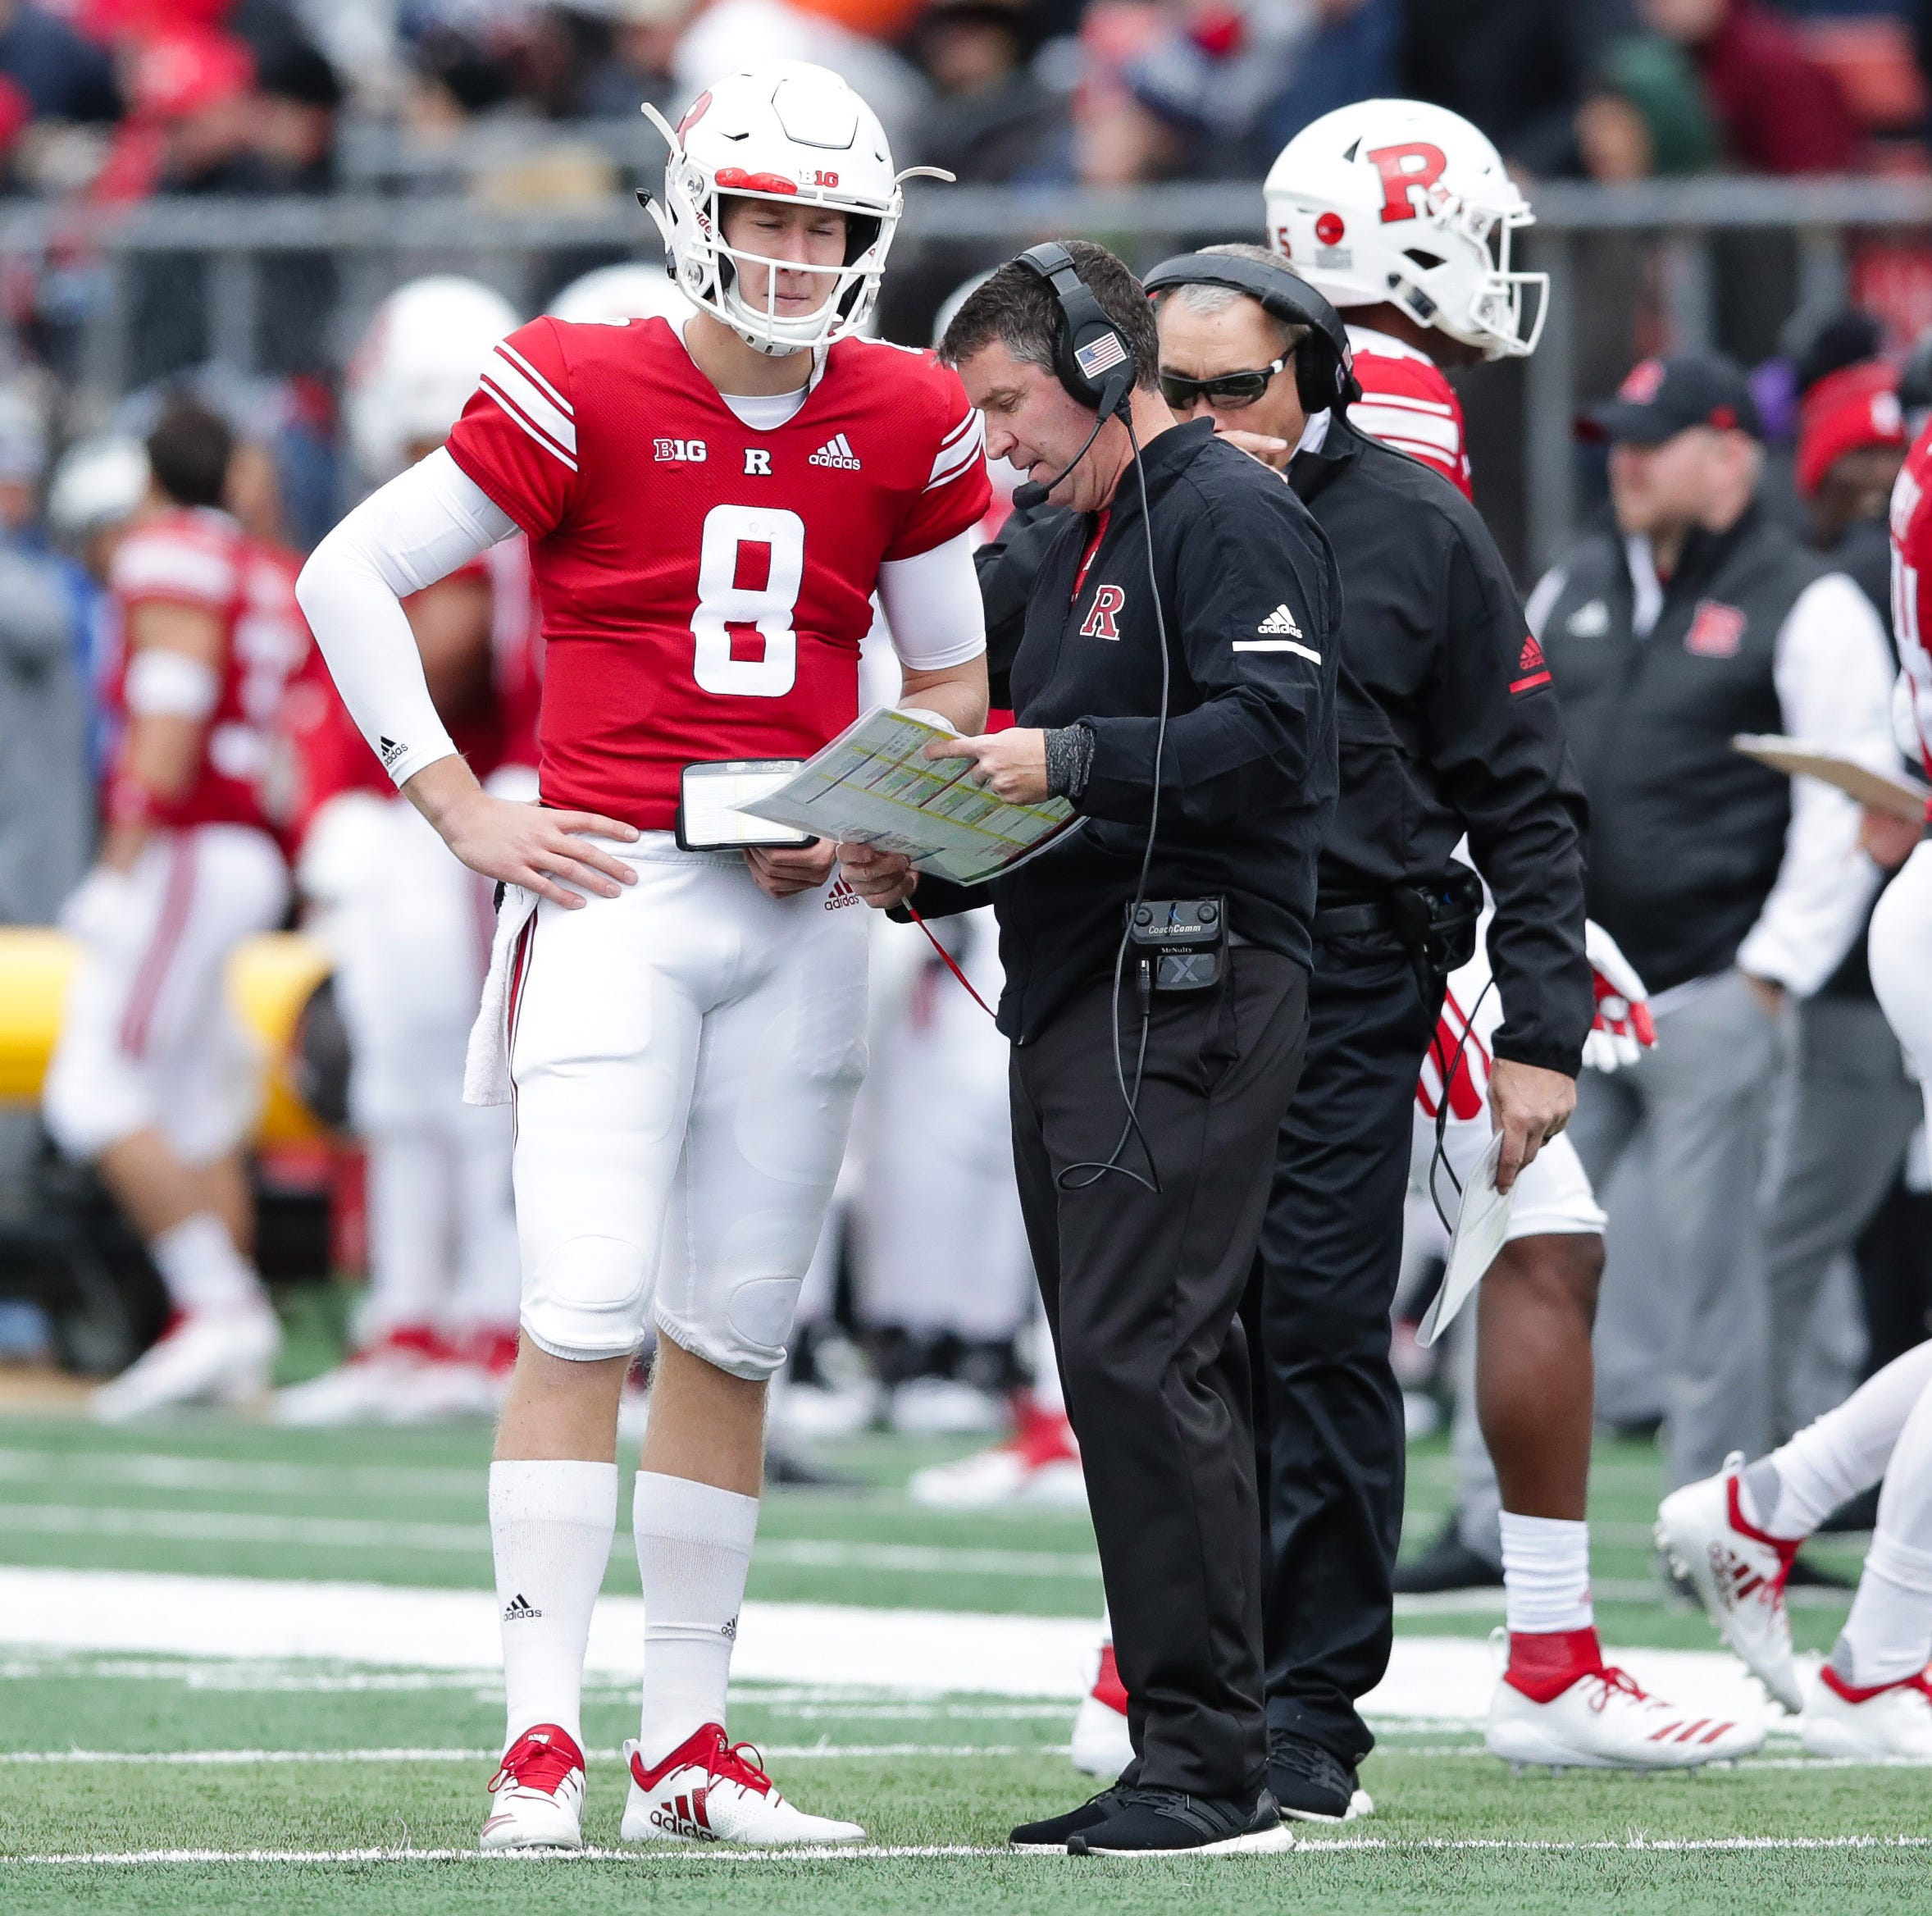 Rutgers football: Five takeaways from Rutgers' 20-7 loss to Penn State